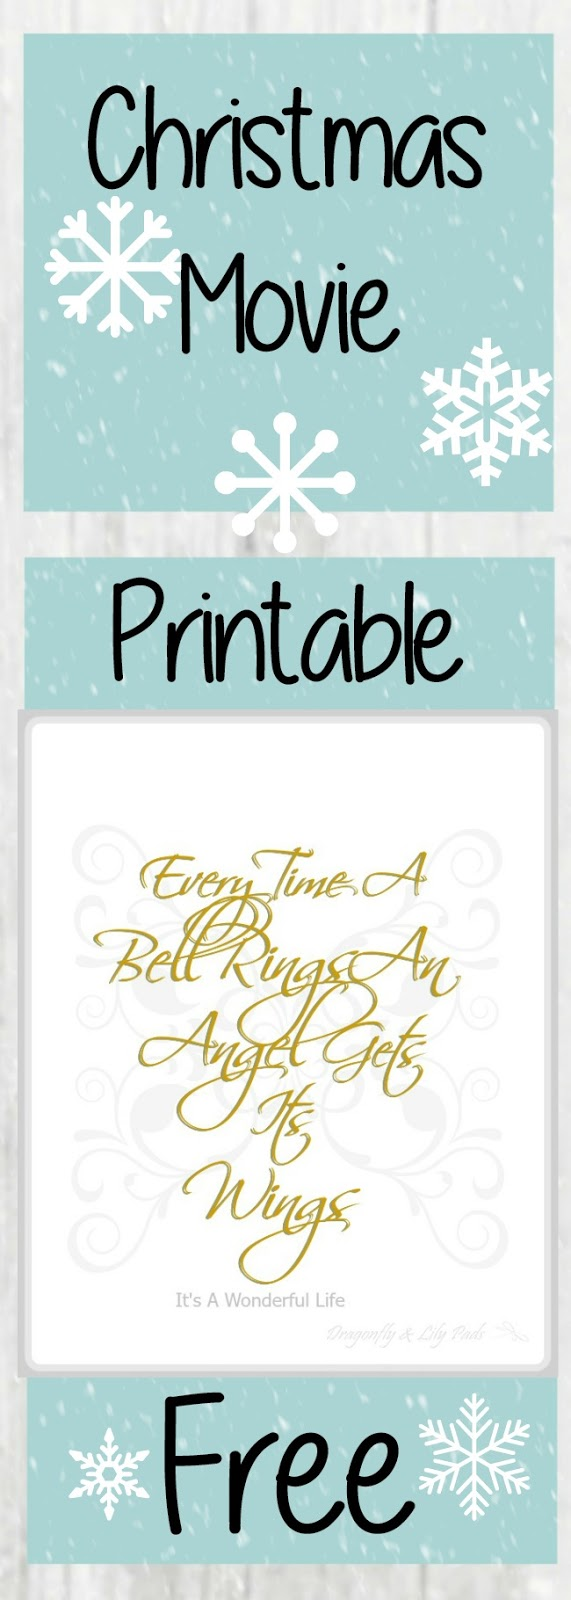 Christmas Movie Free Printable for personal use only